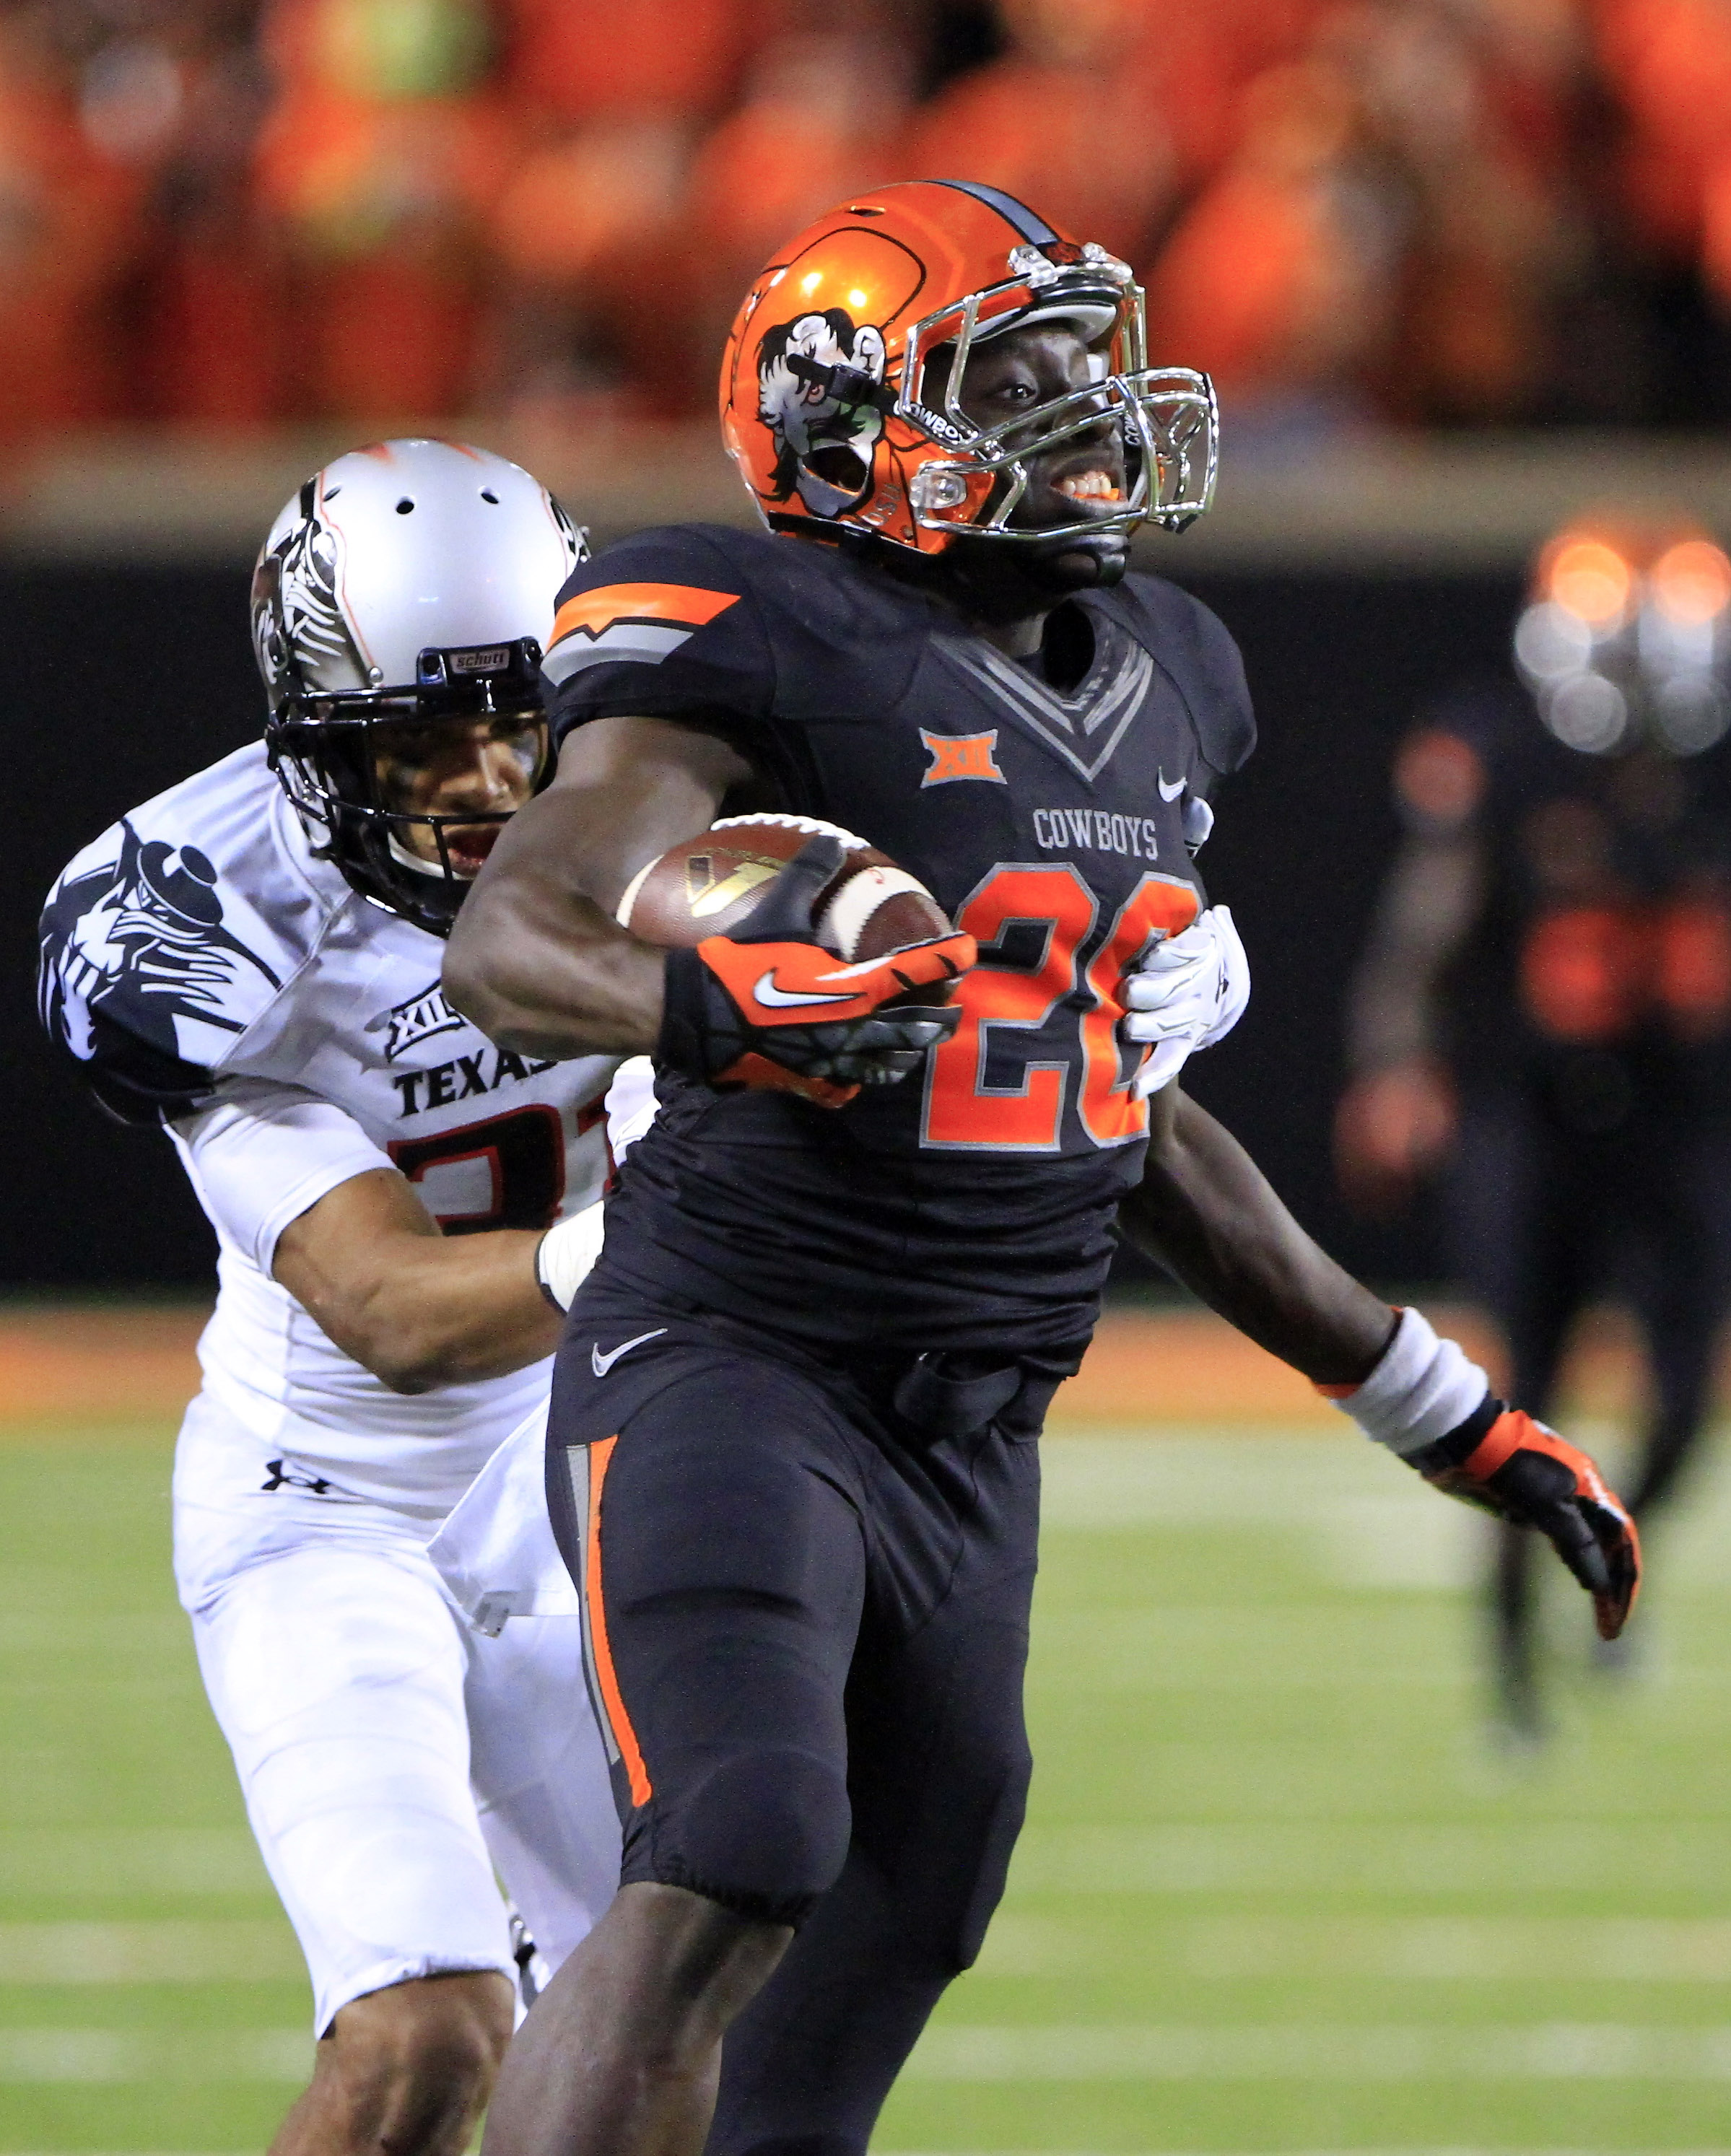 Texas Tech Red Raiders defensive back Justis Nelson (31) tackles Oklahoma State Cowboys running back Corey Bennett (20) during the second half of a game at Boone Pickens Stadium. Oklahoma State won 45-35. (Alonzo Adams-USA TODAY Sports)